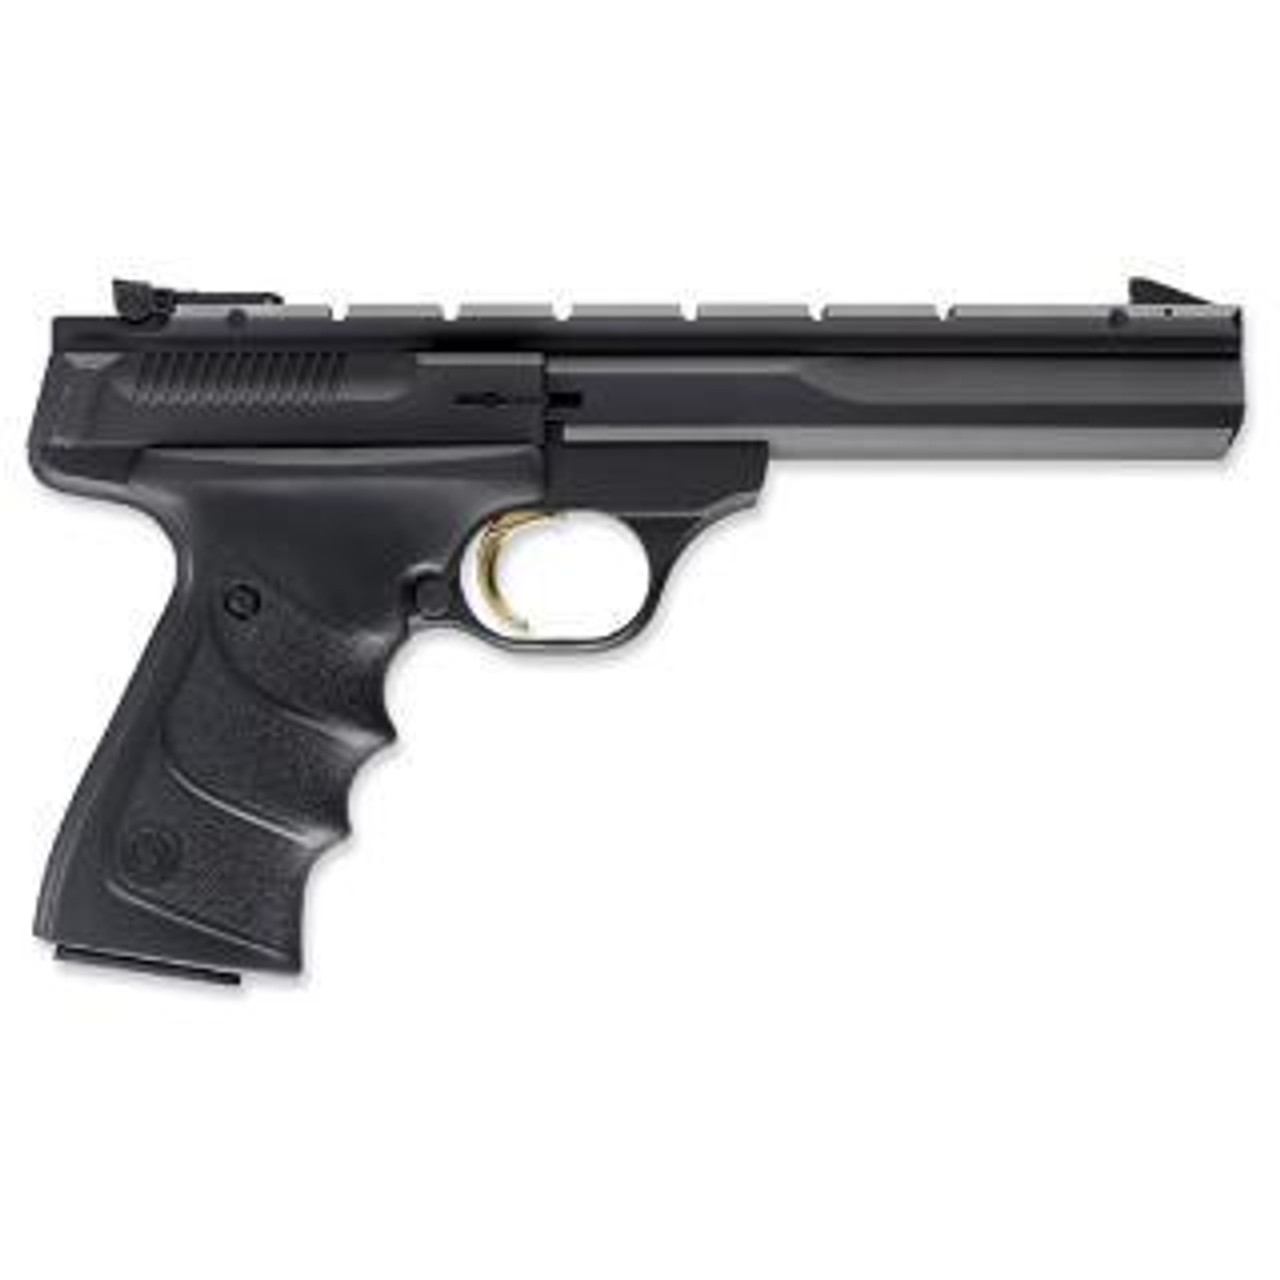 Browning Buckmark Contour CALIFORNIA LEGAL - .22LR